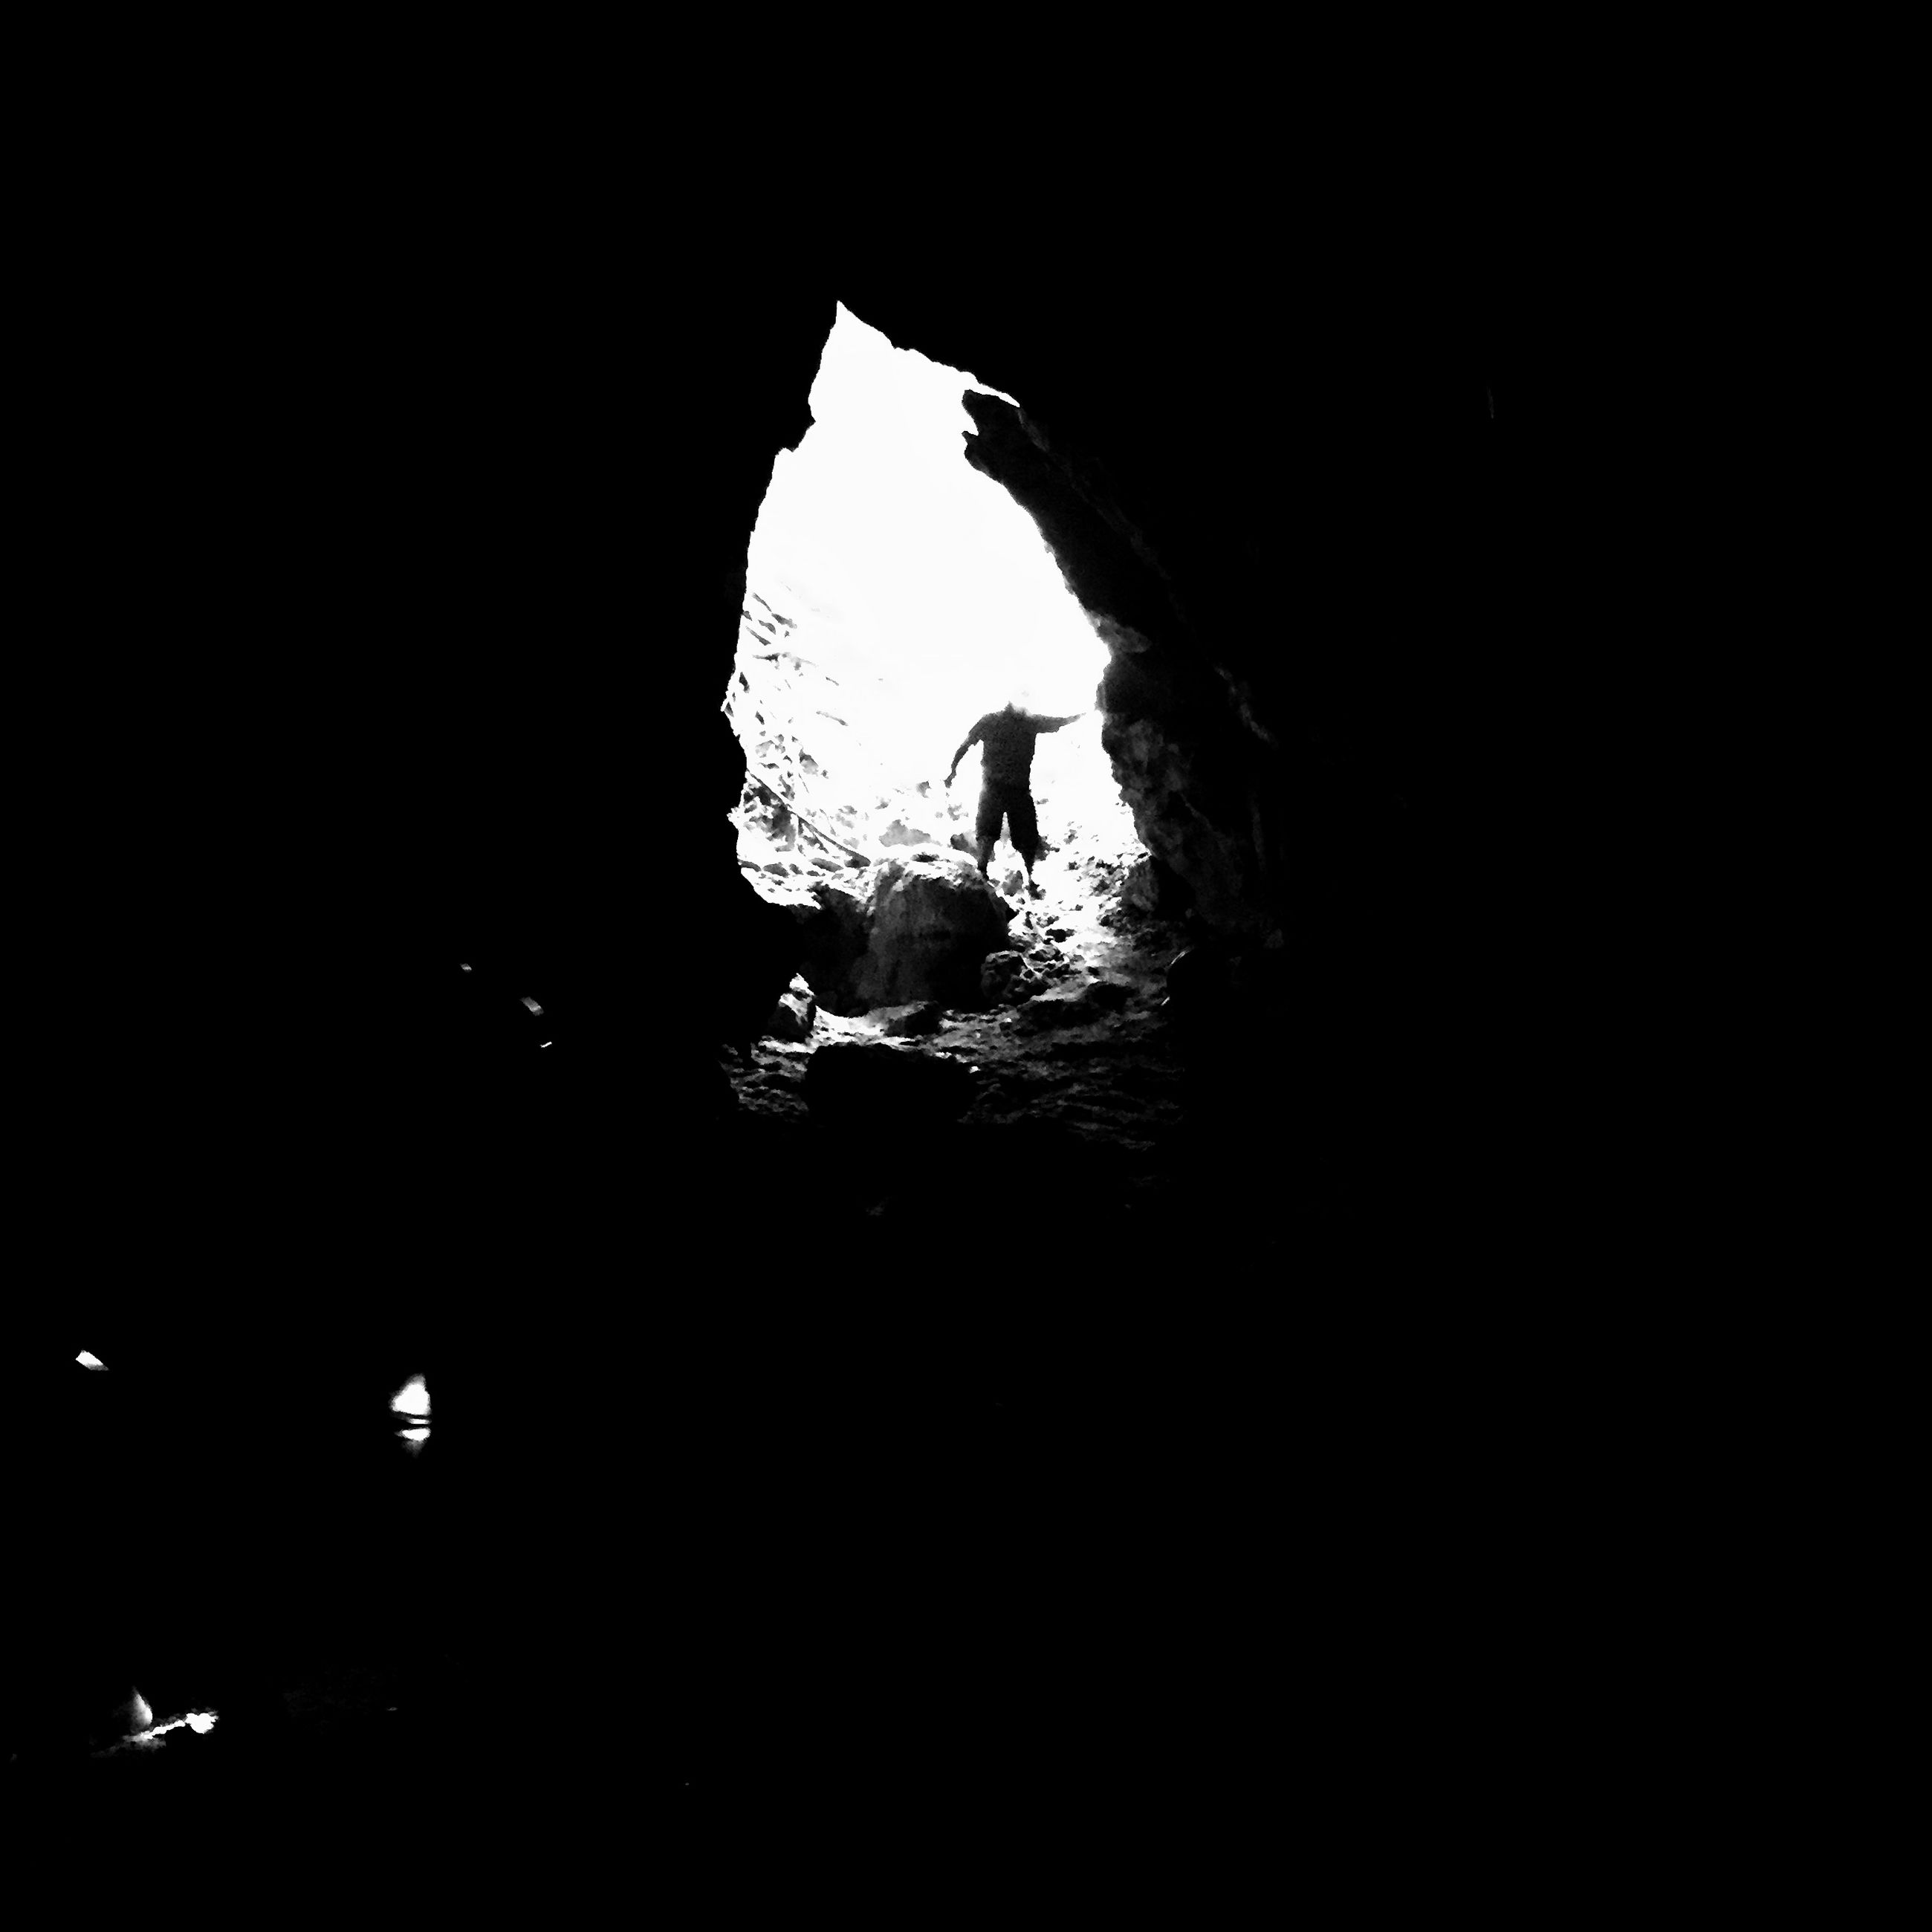 lifestyles, silhouette, leisure activity, men, full length, adventure, standing, unrecognizable person, person, low angle view, dark, nature, tunnel, sky, exploration, copy space, boys